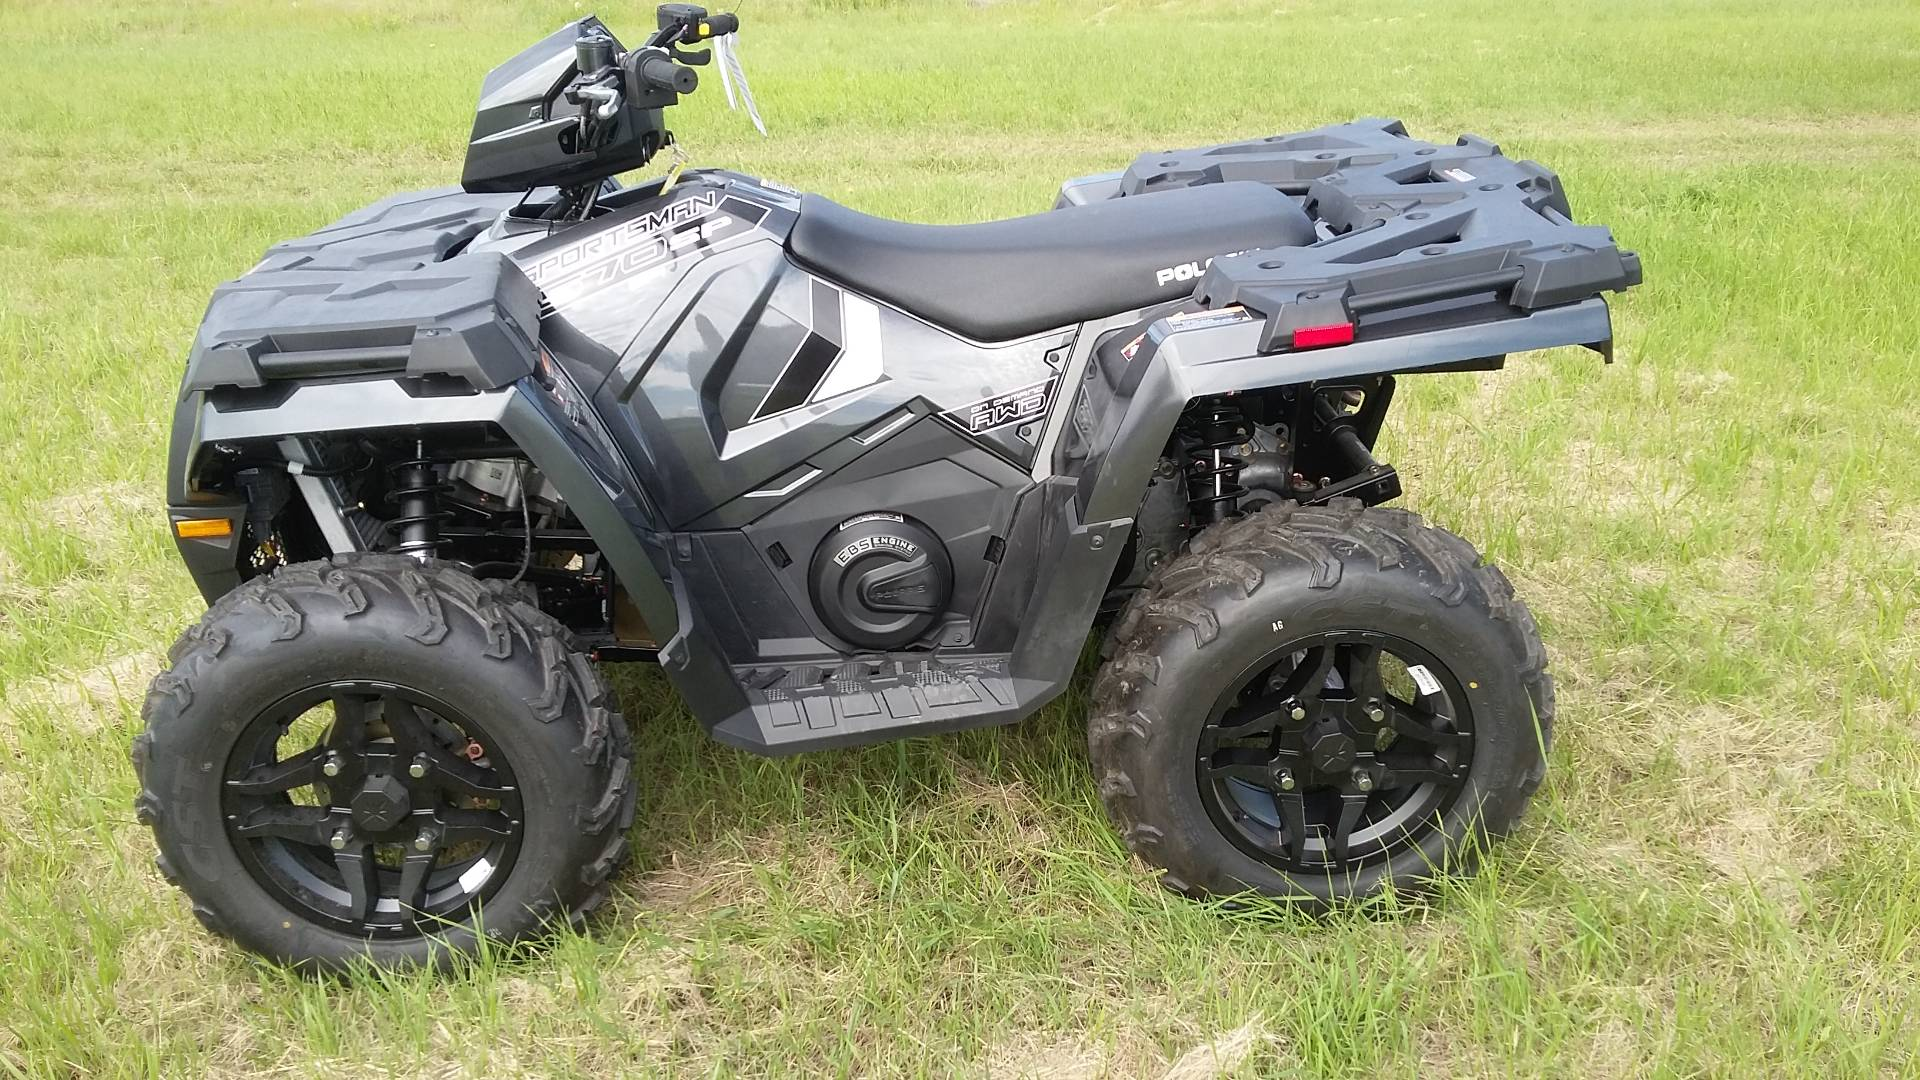 2019 Polaris Sportsman 570 SP in Cottonwood, Idaho - Photo 1